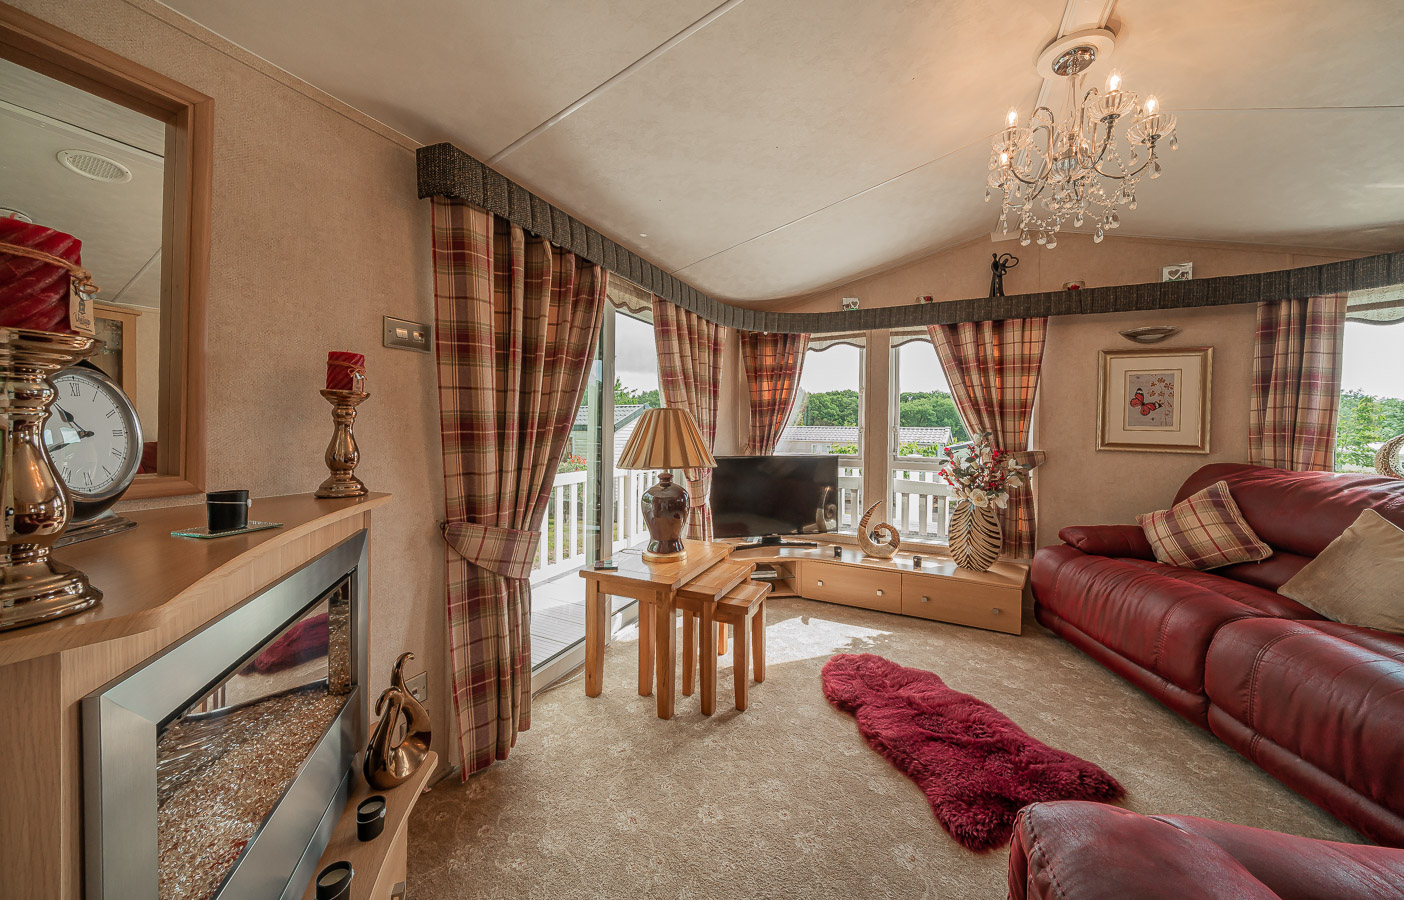 Monkton-Wyld-Static-Mobile-Holiday-Home-Sale-Plot-23-Charmouth-Lyme-Regis-West-Dorset-8